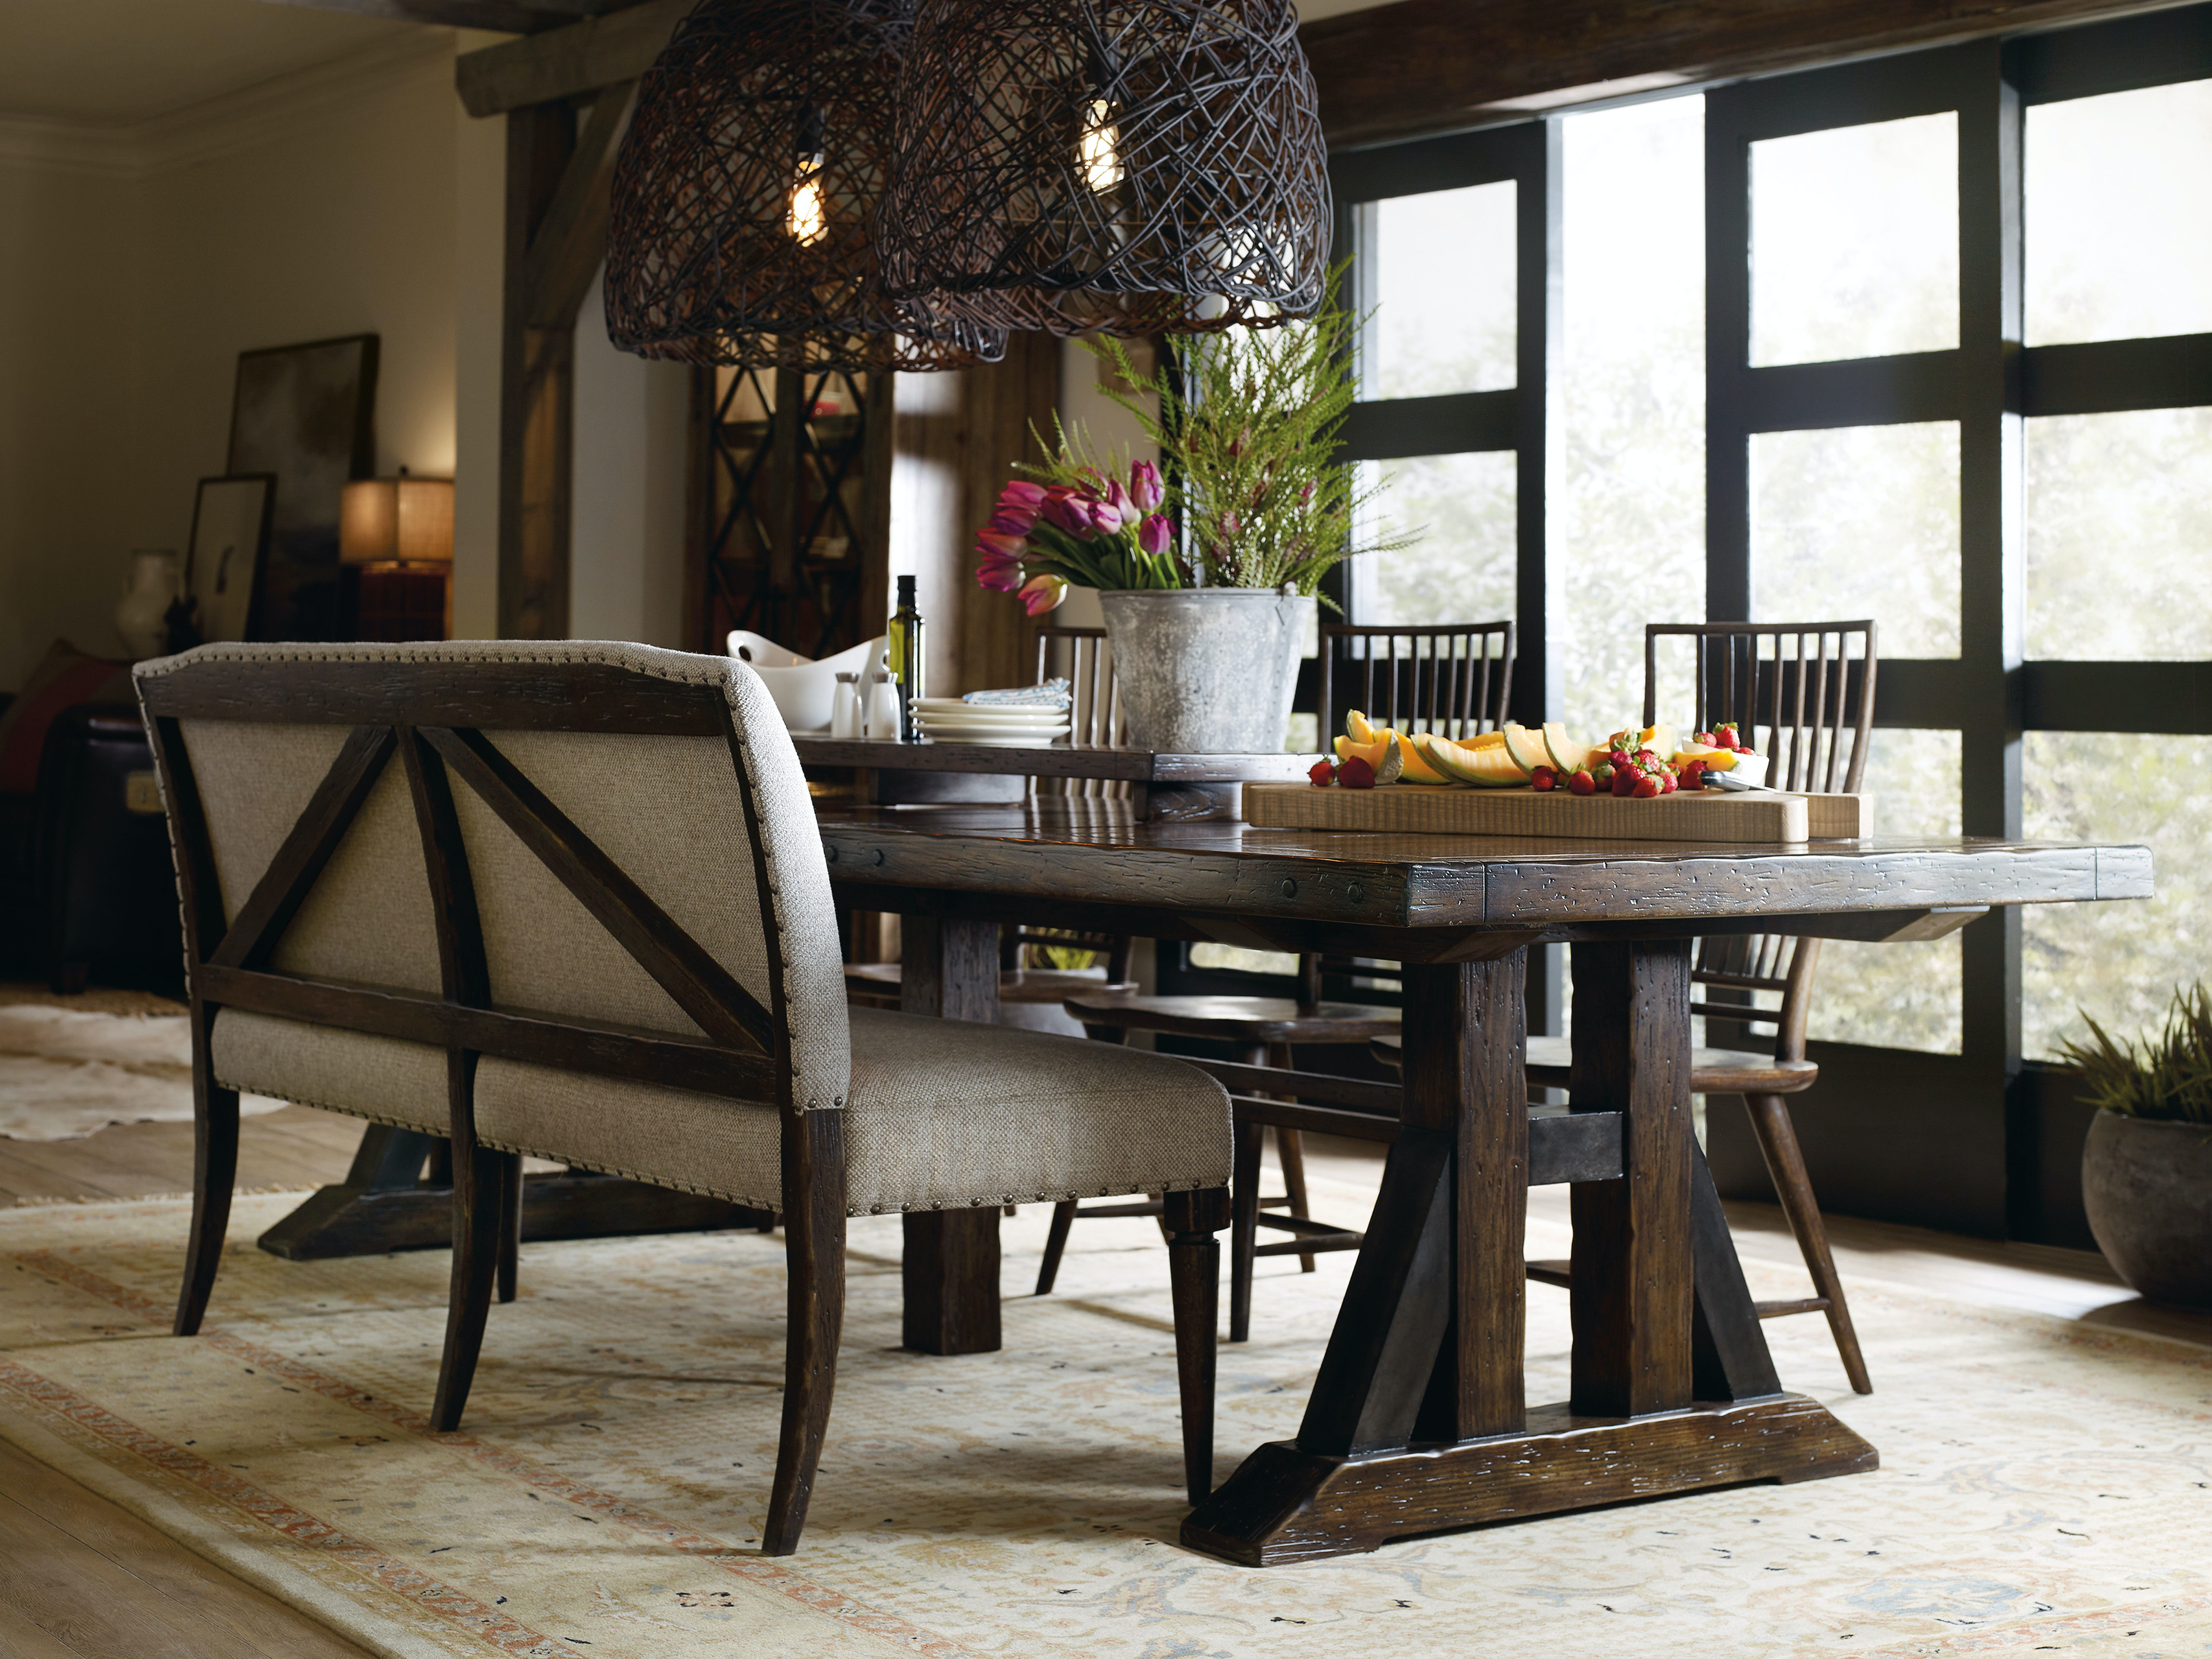 rustic dining chairs - HD 2048×1536